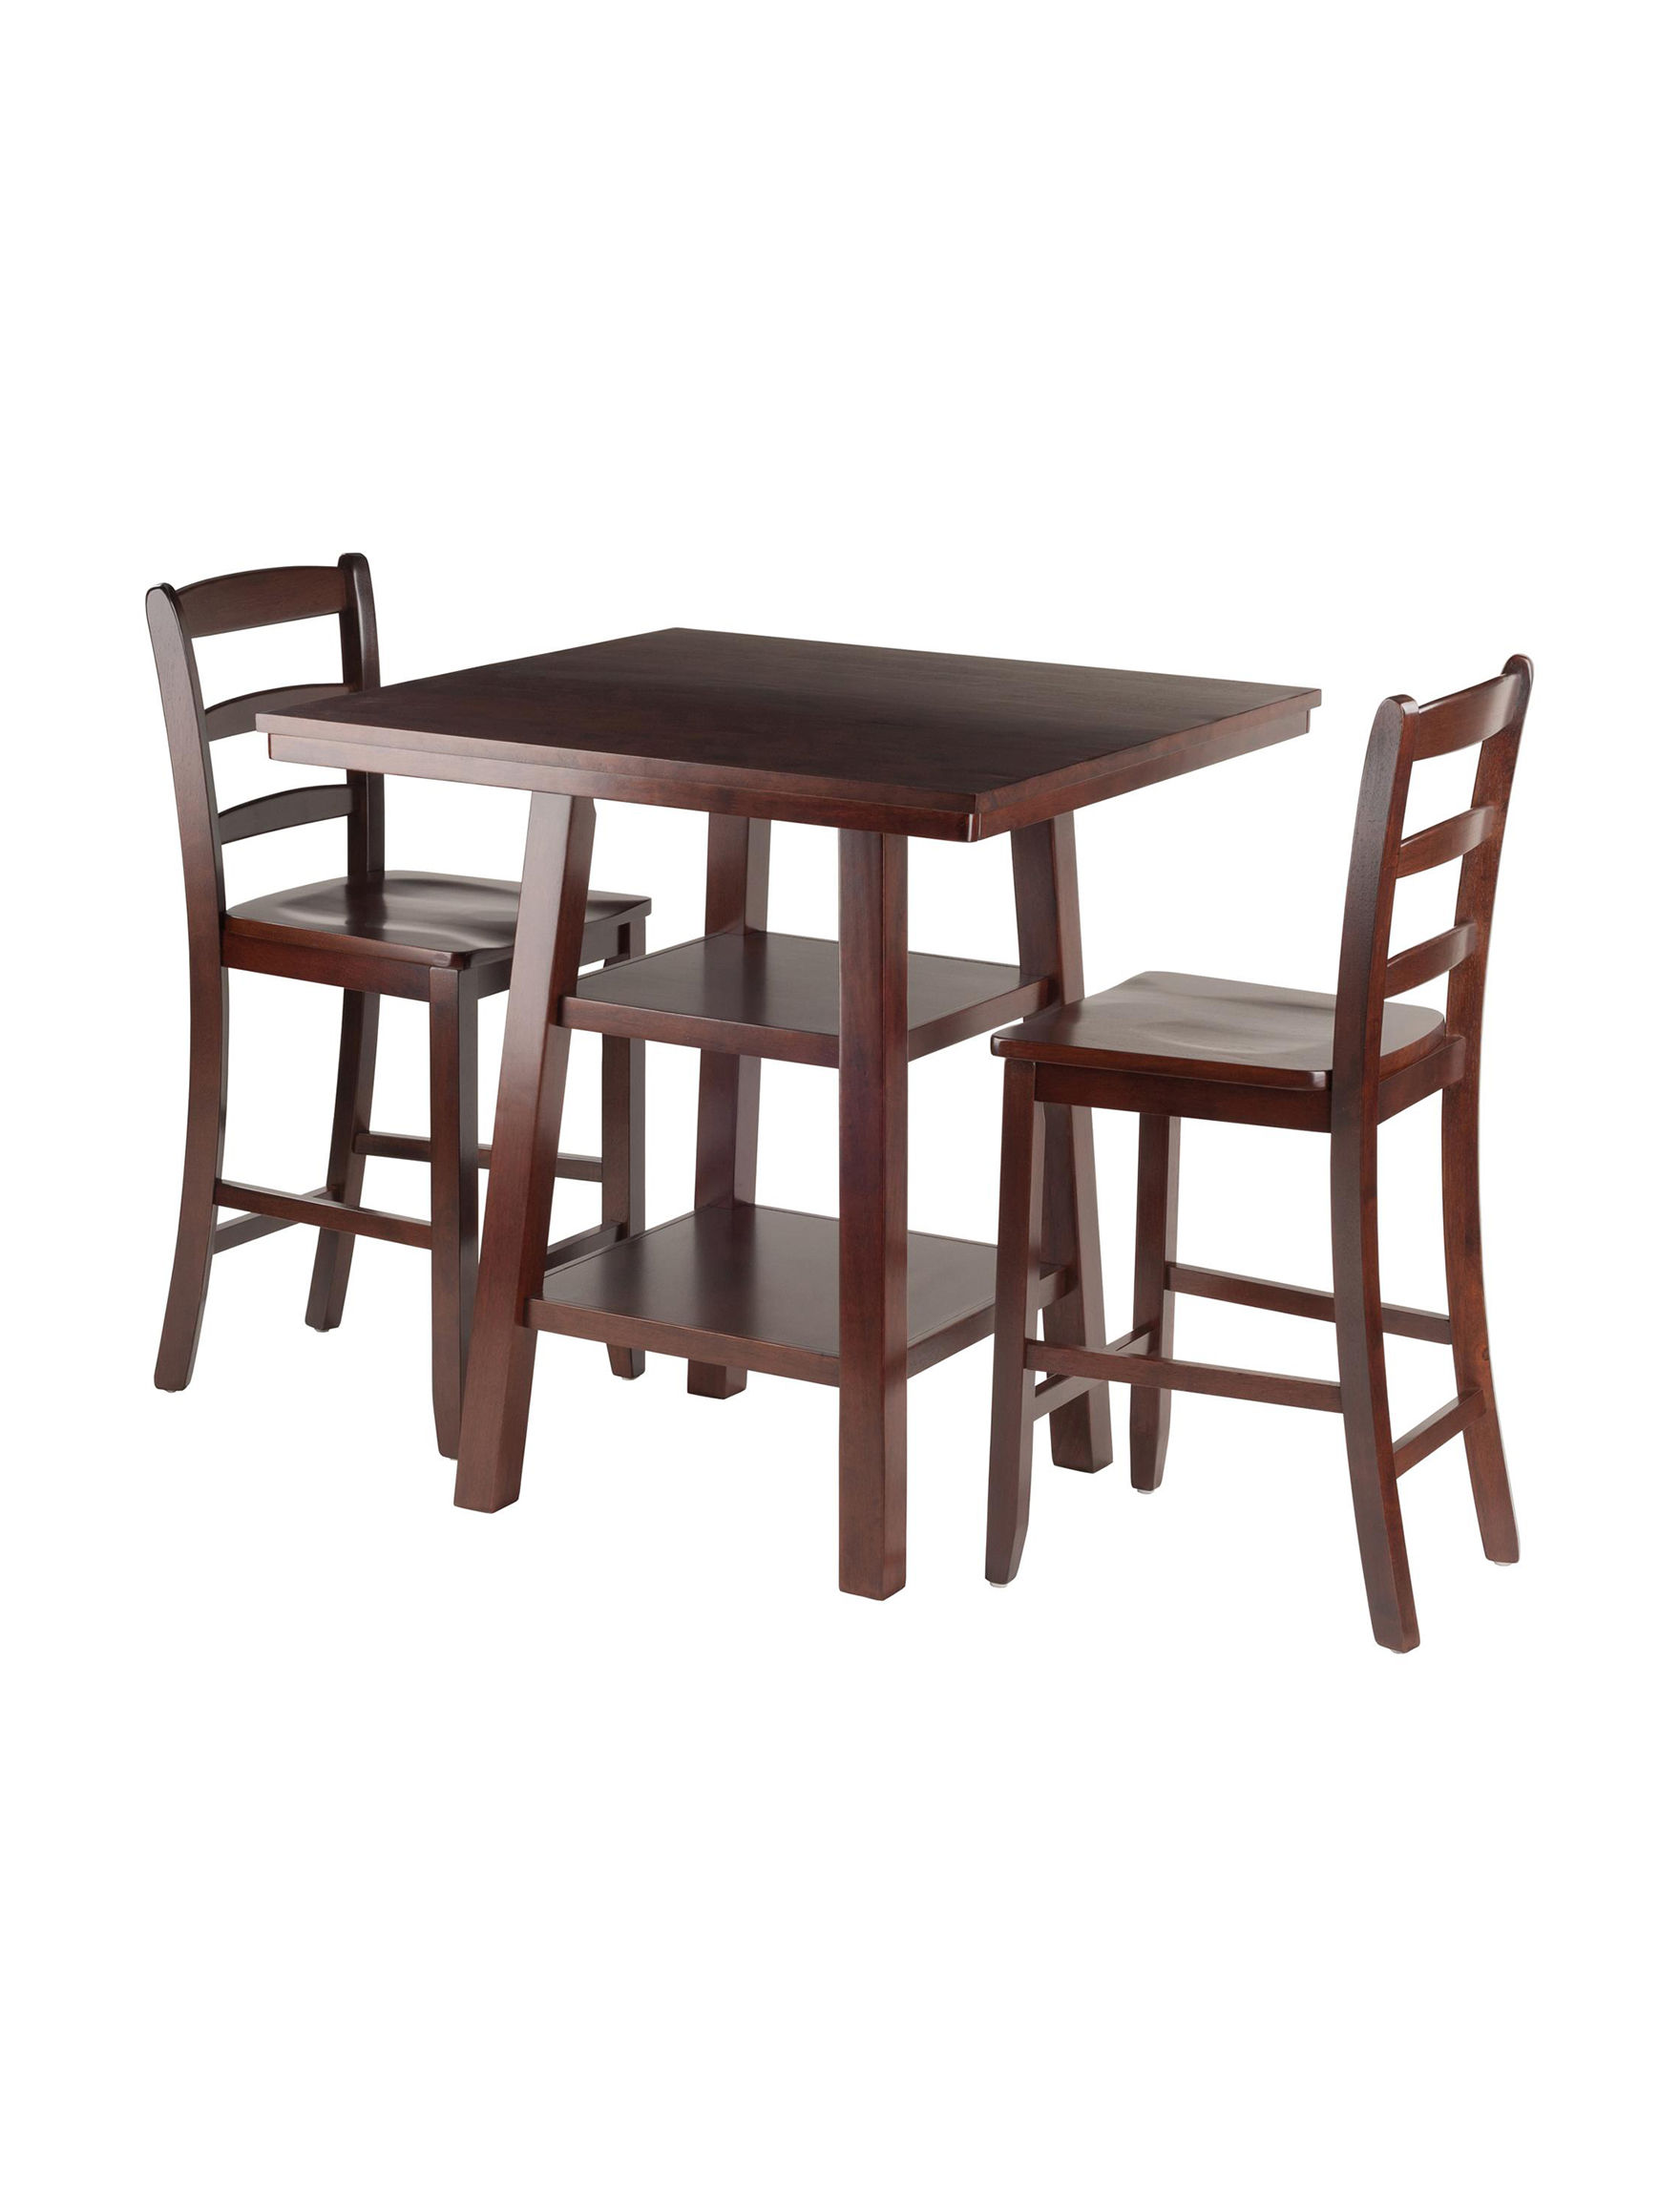 Winsome  Dining Room Sets Kitchen & Dining Furniture